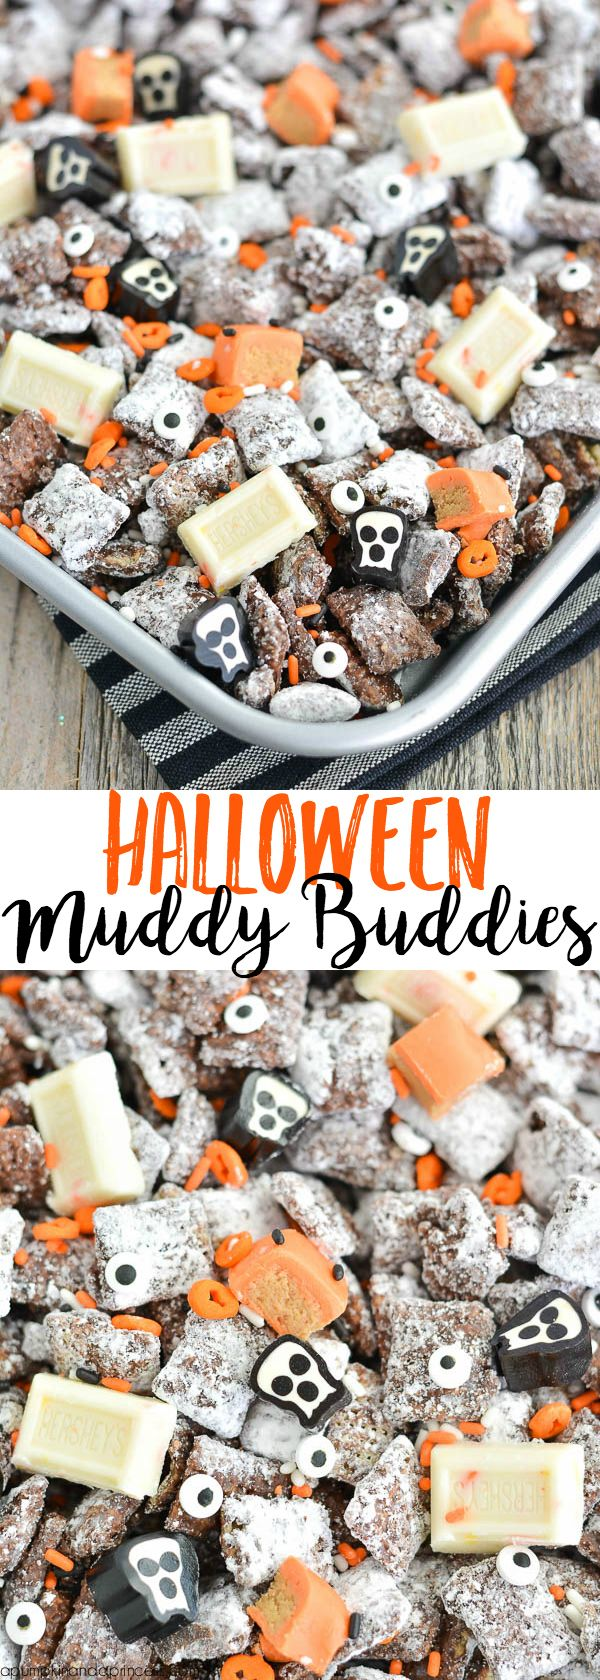 HALLOWEEN MUDDY BUDDIES – looking for an easy Halloween treat? This muddy buddies recipe is great for a Halloween party or spooky movie night! (Diy Halloween Treats)